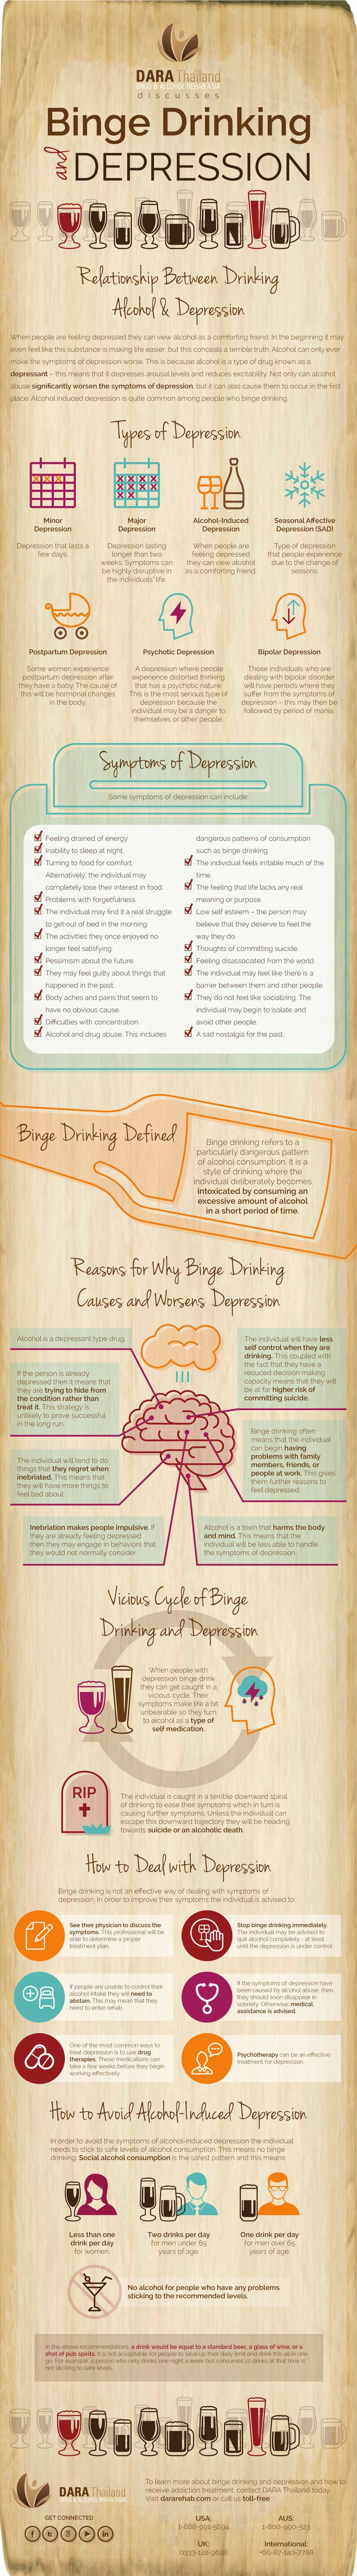 Binge Drinking and Depression -  [by  DARA Thailand -- via #tipsographic]. More at tipsographic.com